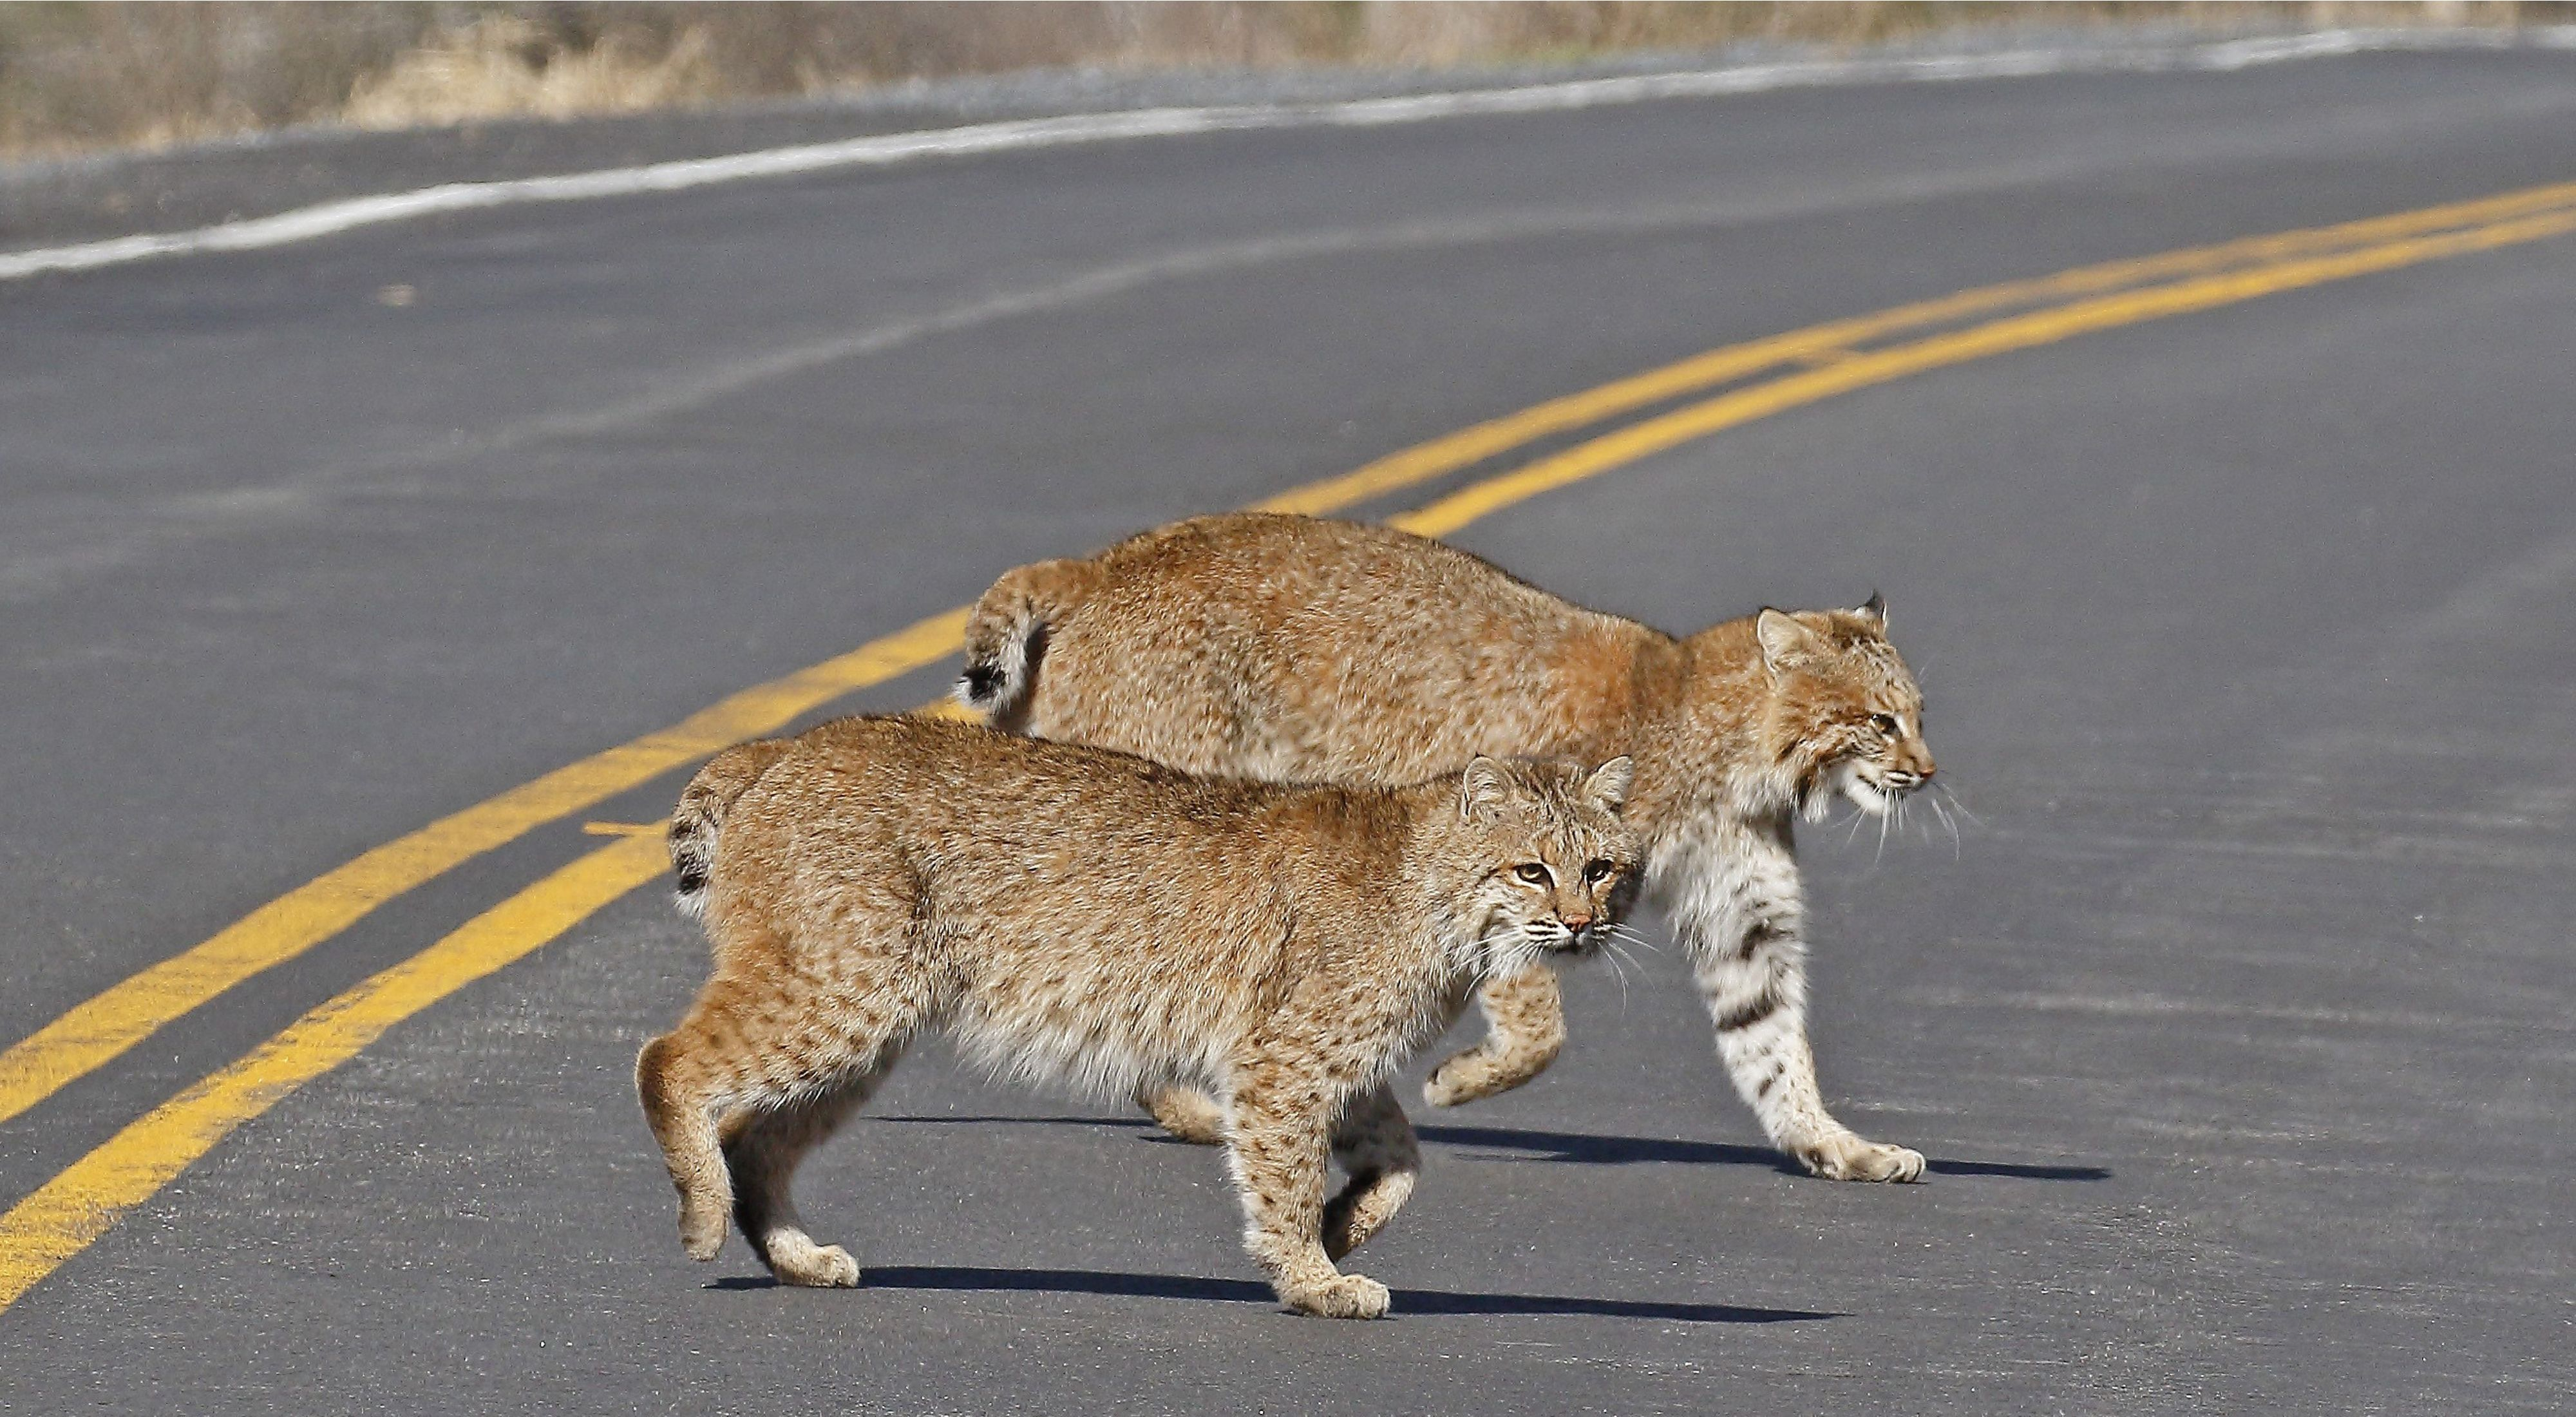 Two bobcats crossing a road with one looking at the camera.